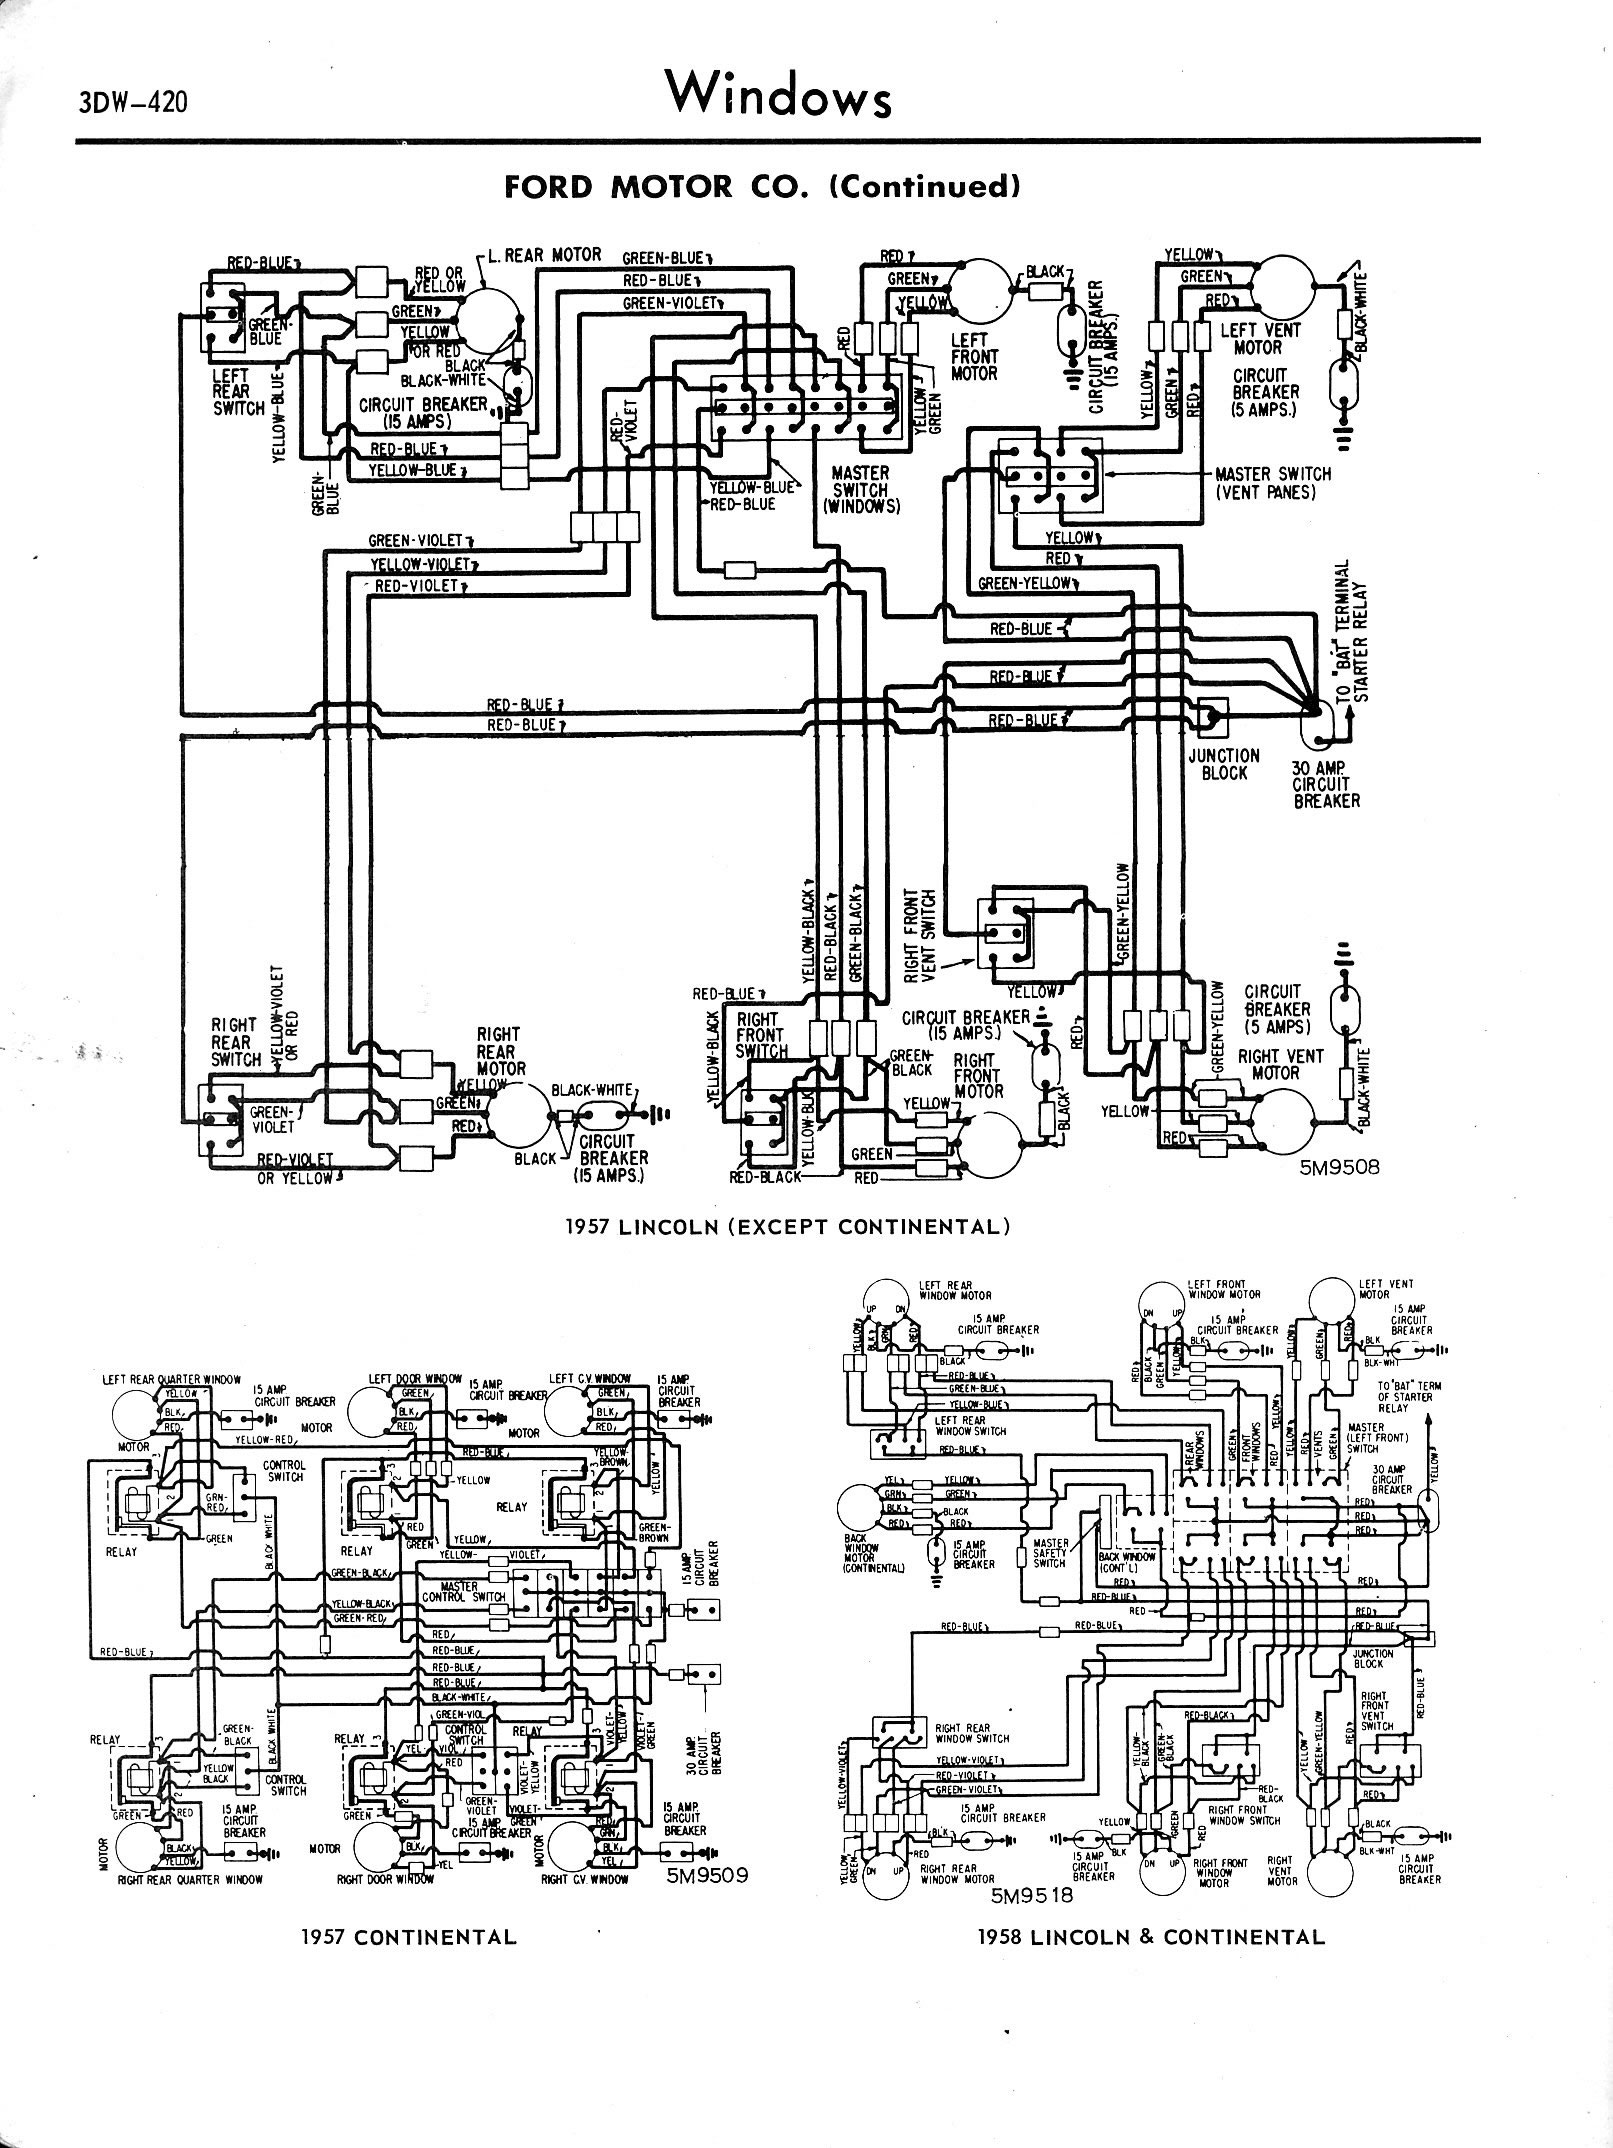 1957-1965 Accessory Wiring Diagrams / 3WD-420.jpg